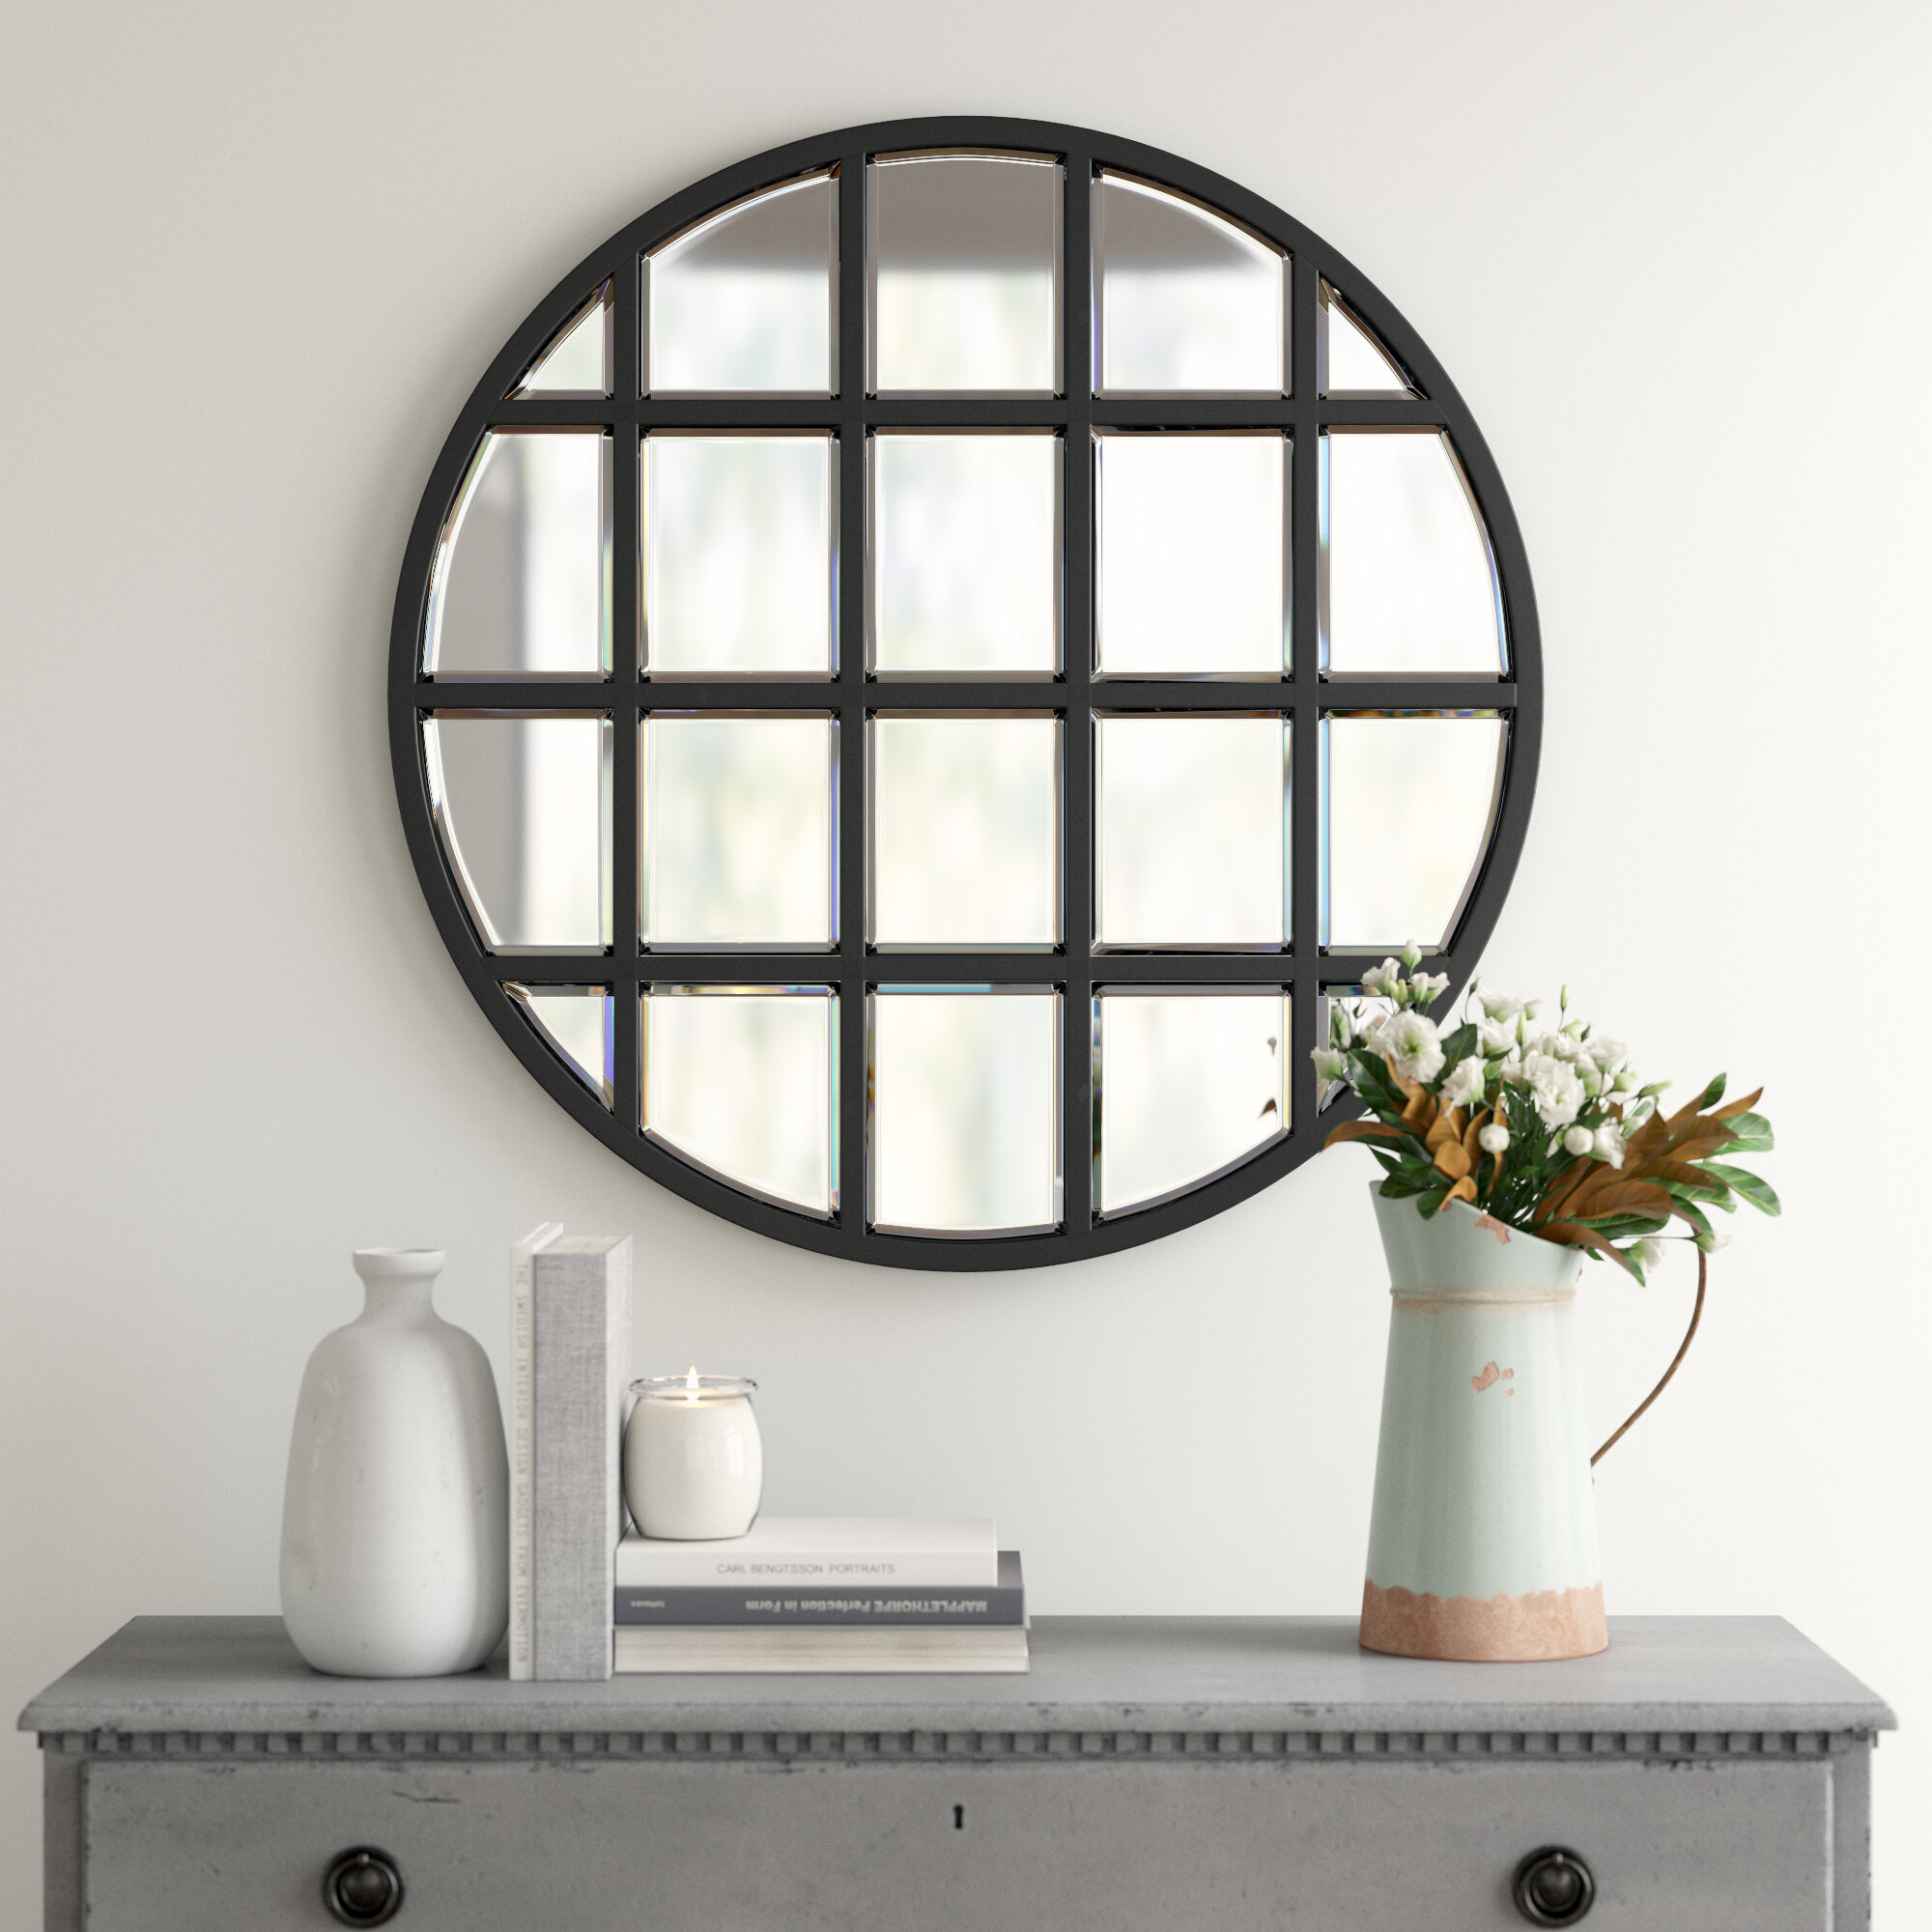 Cottage Wall Mirrors | Joss & Main Inside Polito Cottage/country Wall Mirrors (Image 3 of 30)